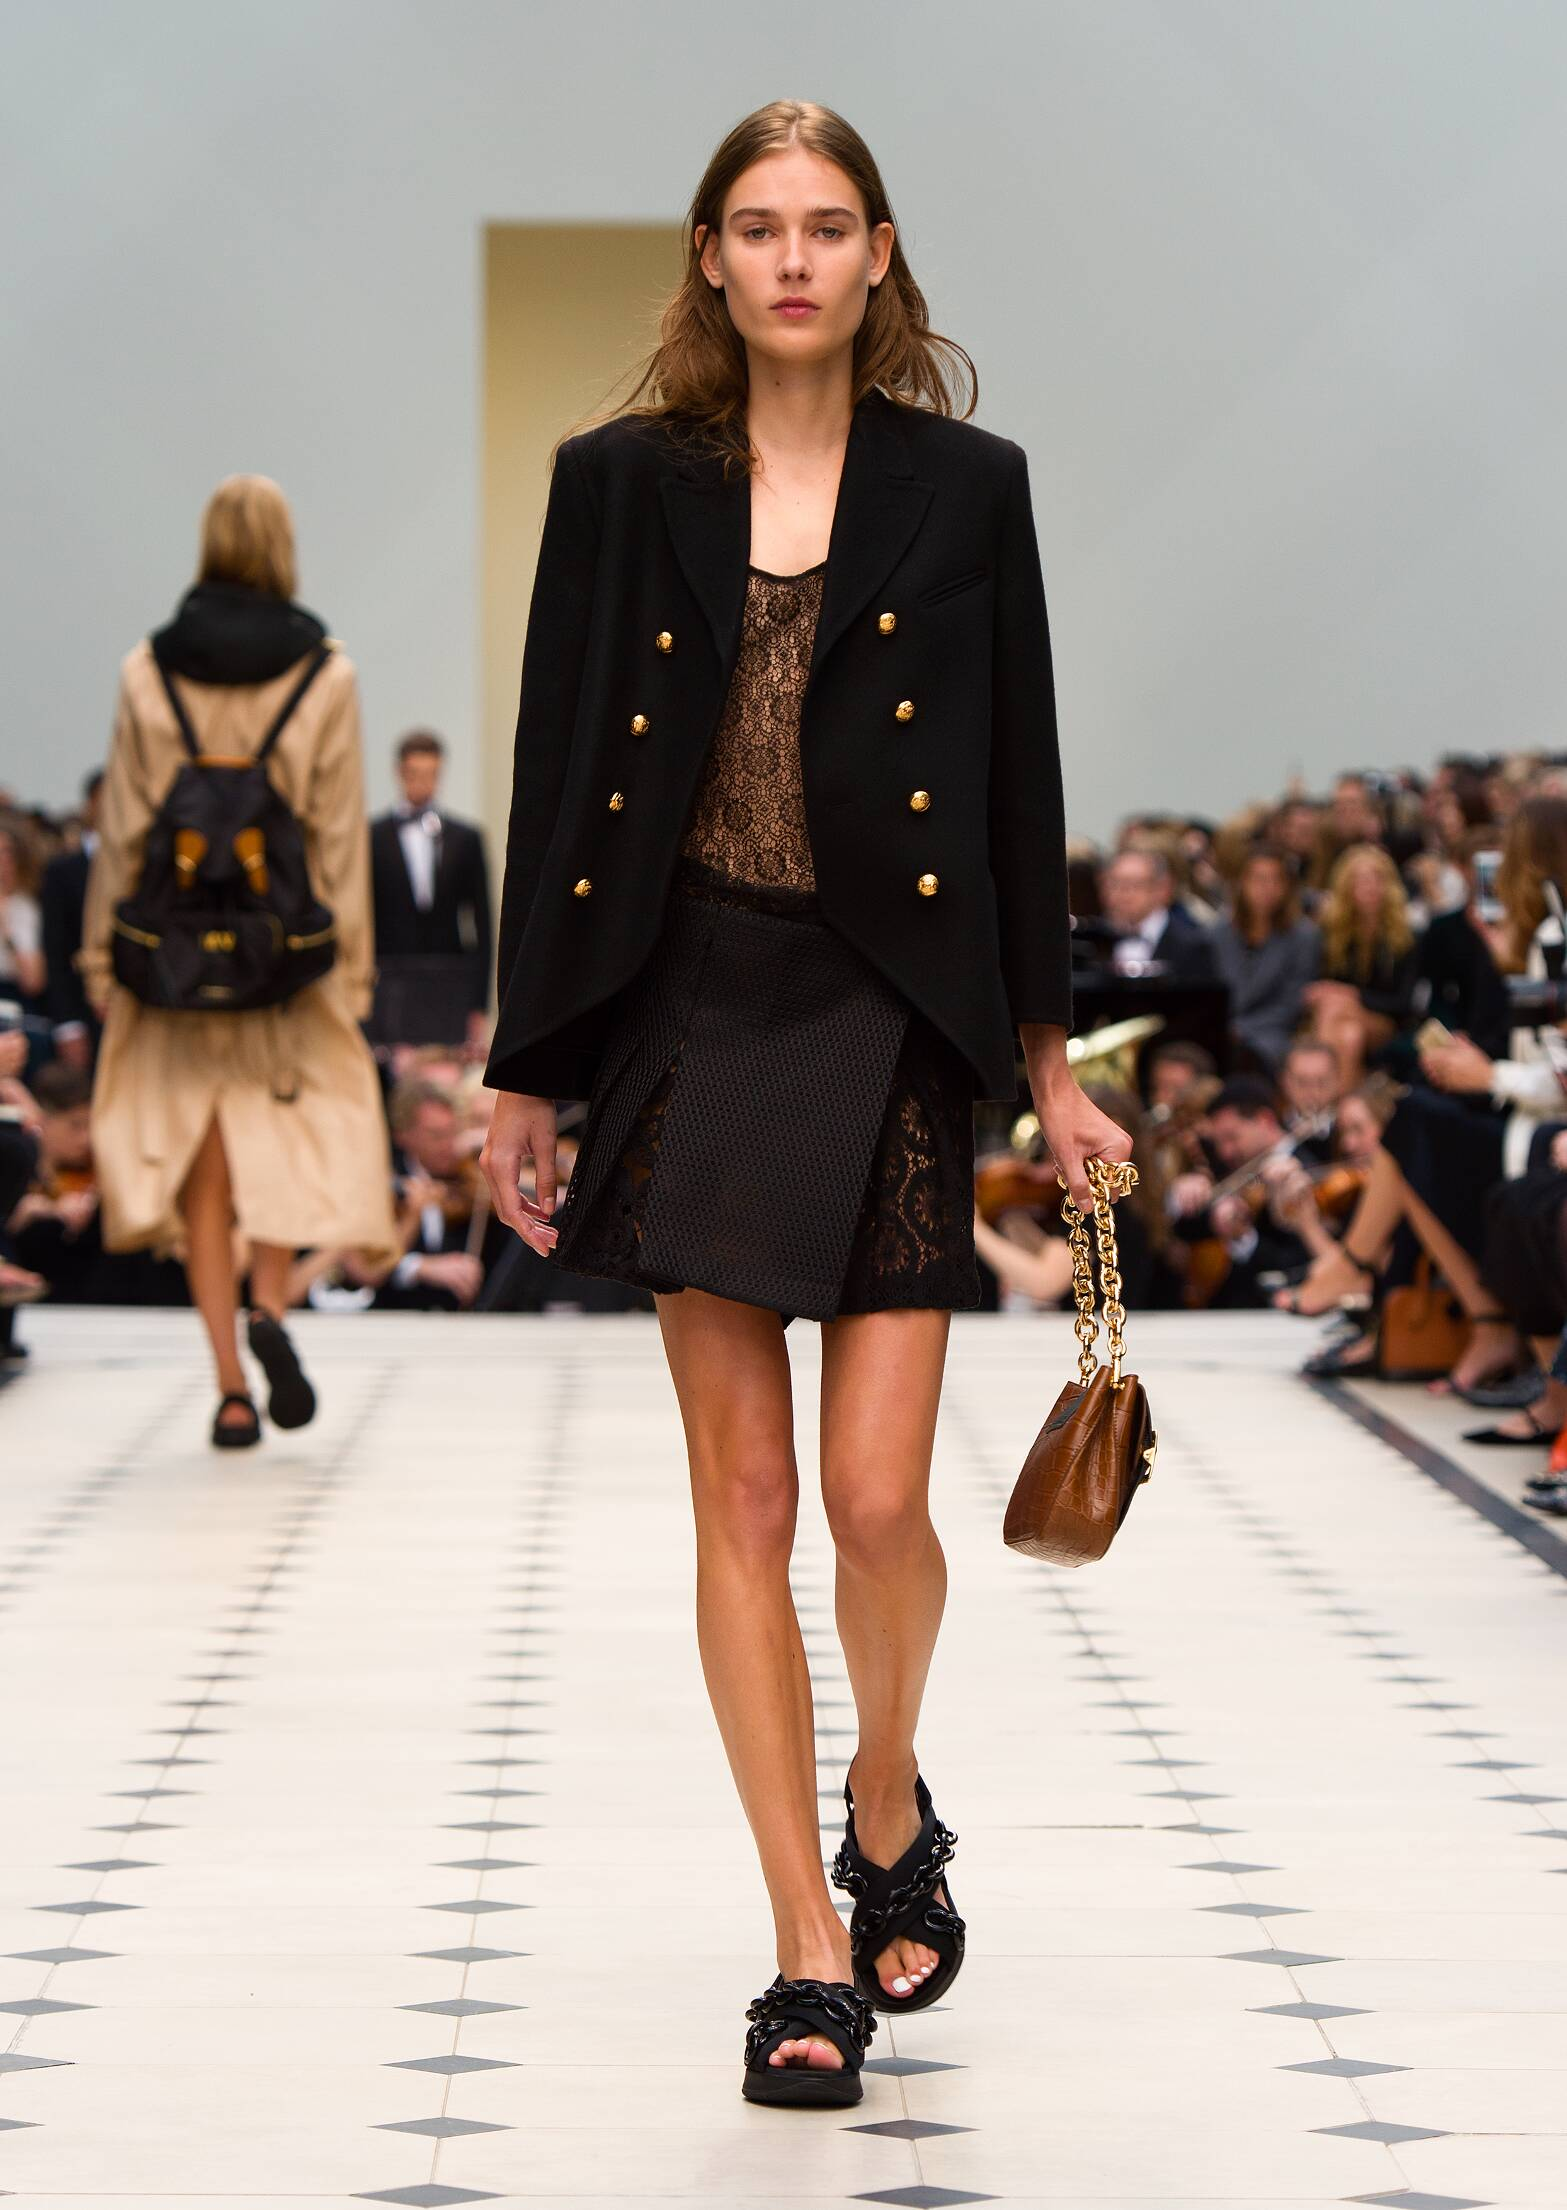 Spring 2016 Woman Fashion Show Burberry Prorsum